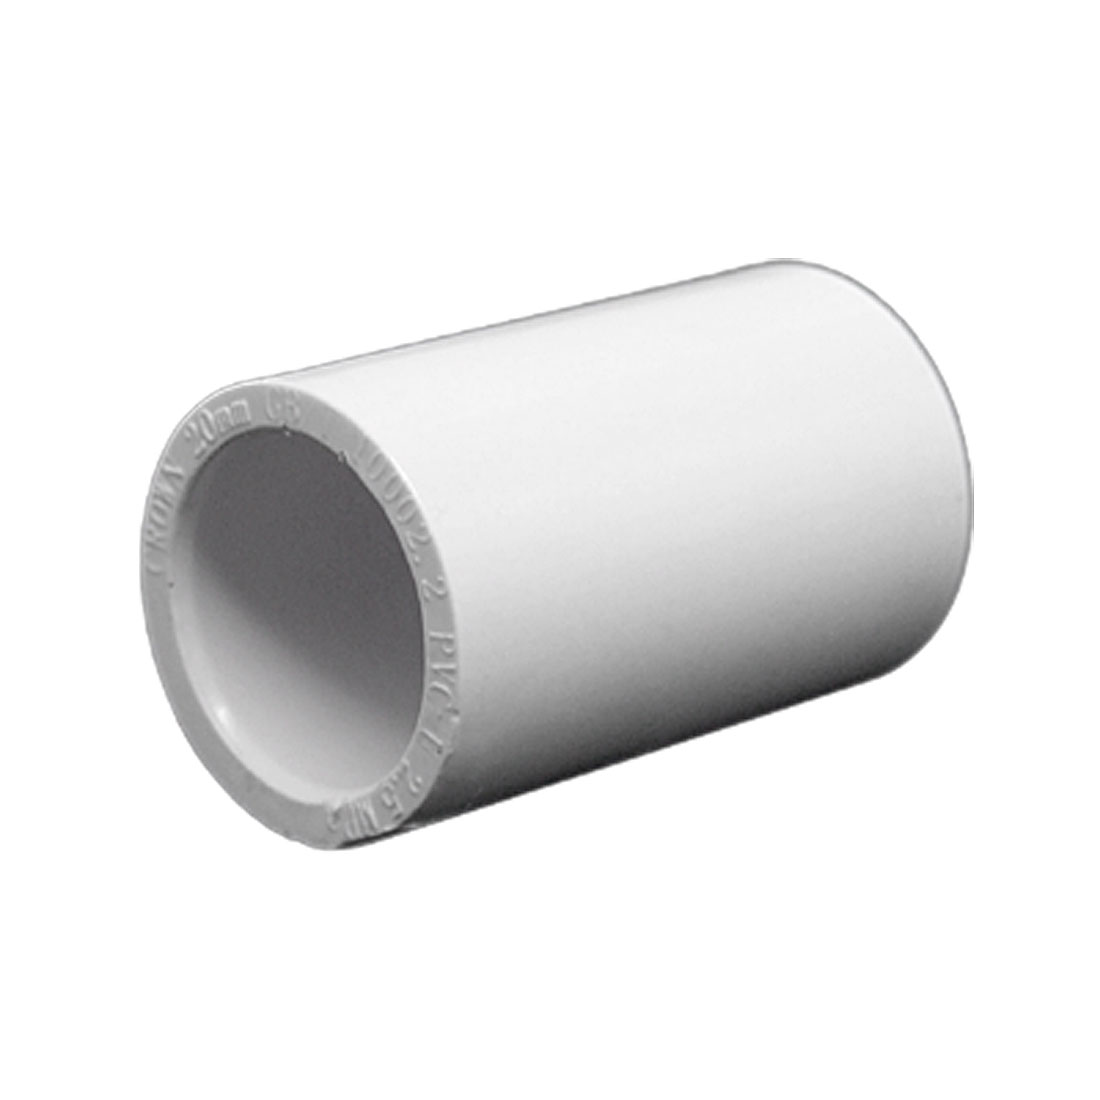 20mm PVC-U Equal Straight Adaptor Non-toxic Drinking Water Pipe Fitting White